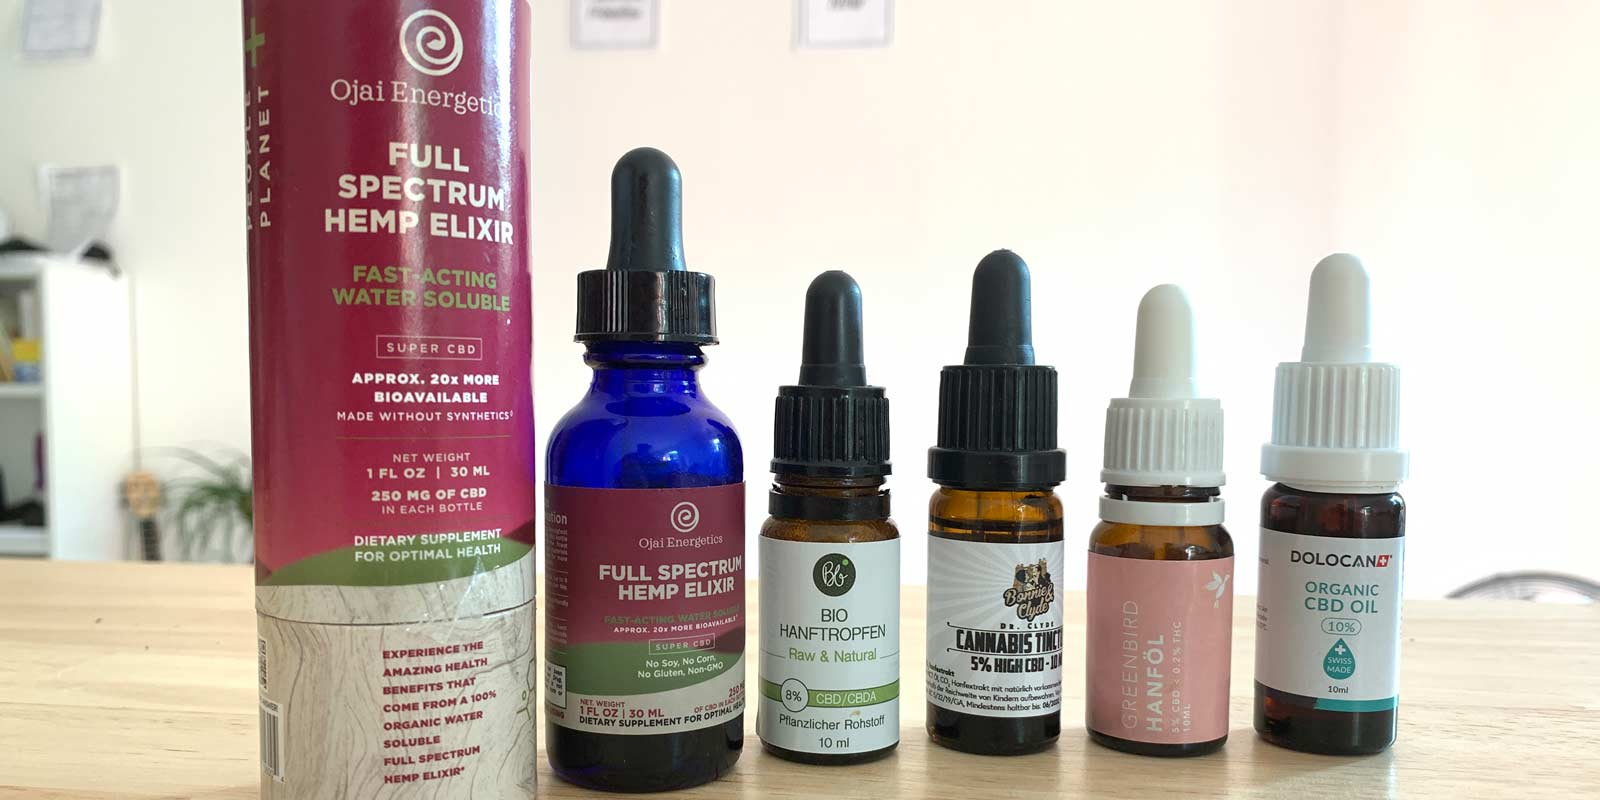 Ojai Energetics CBD and CBD oils